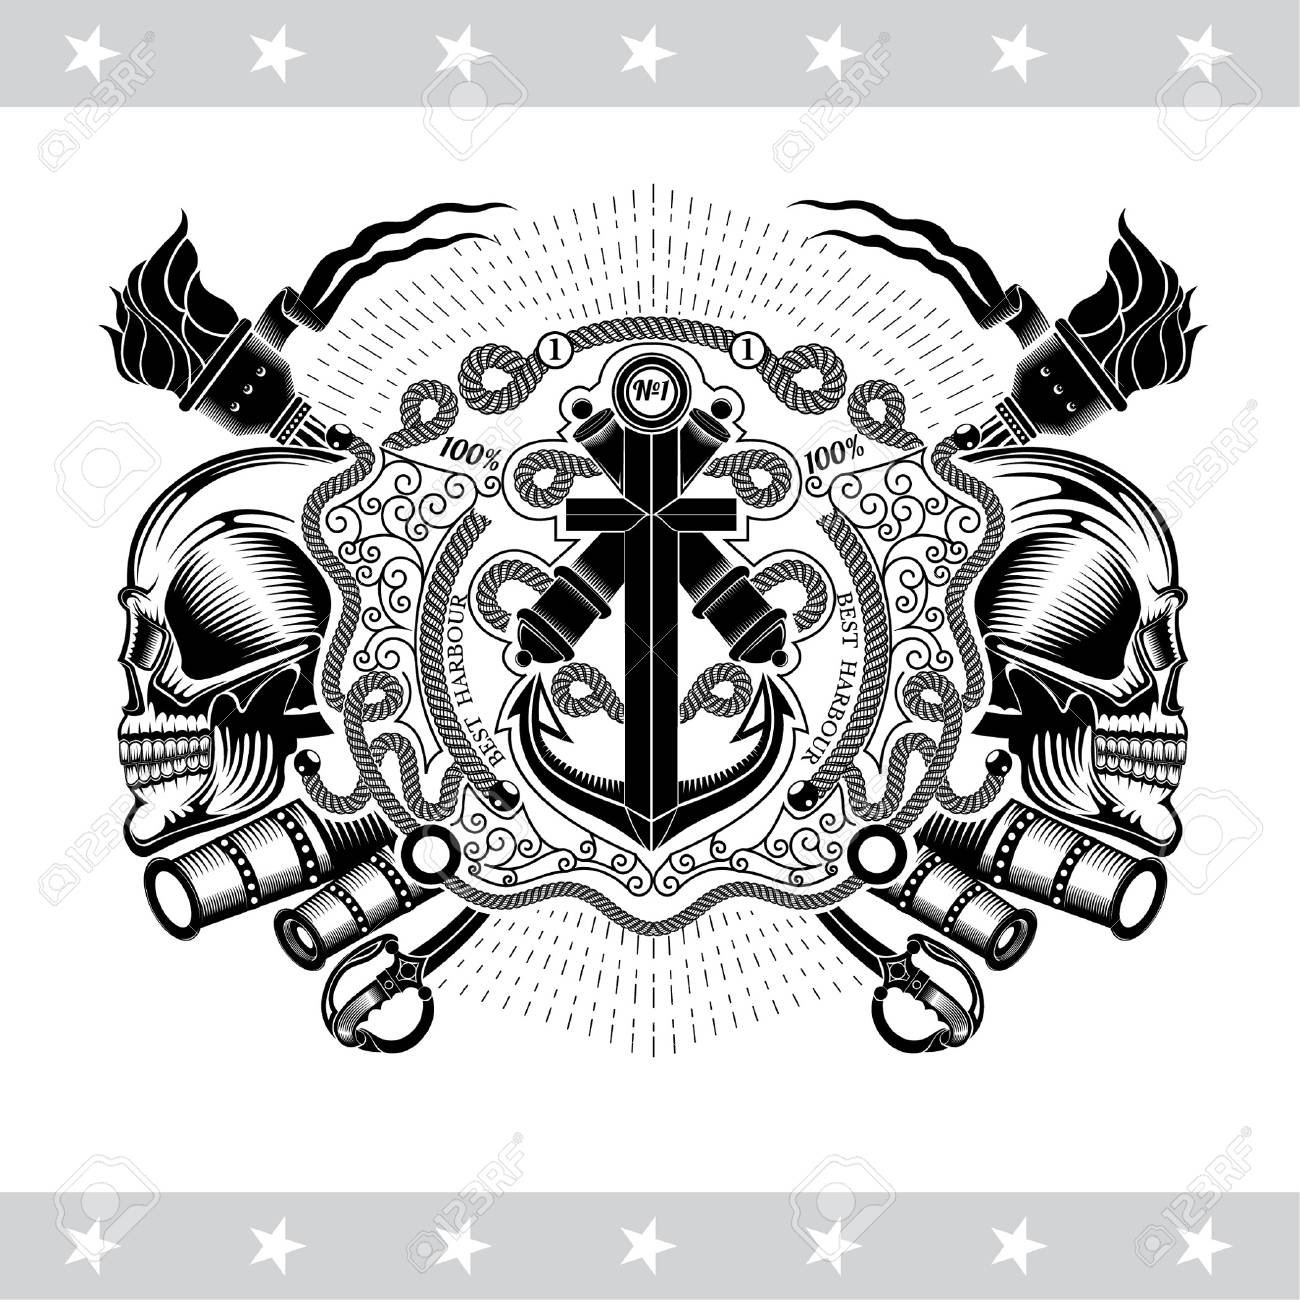 two cross cannon with anchor between skull profile and vintage I Beam Screw two cross cannon with anchor between skull profile and vintage weapons marine label isolated